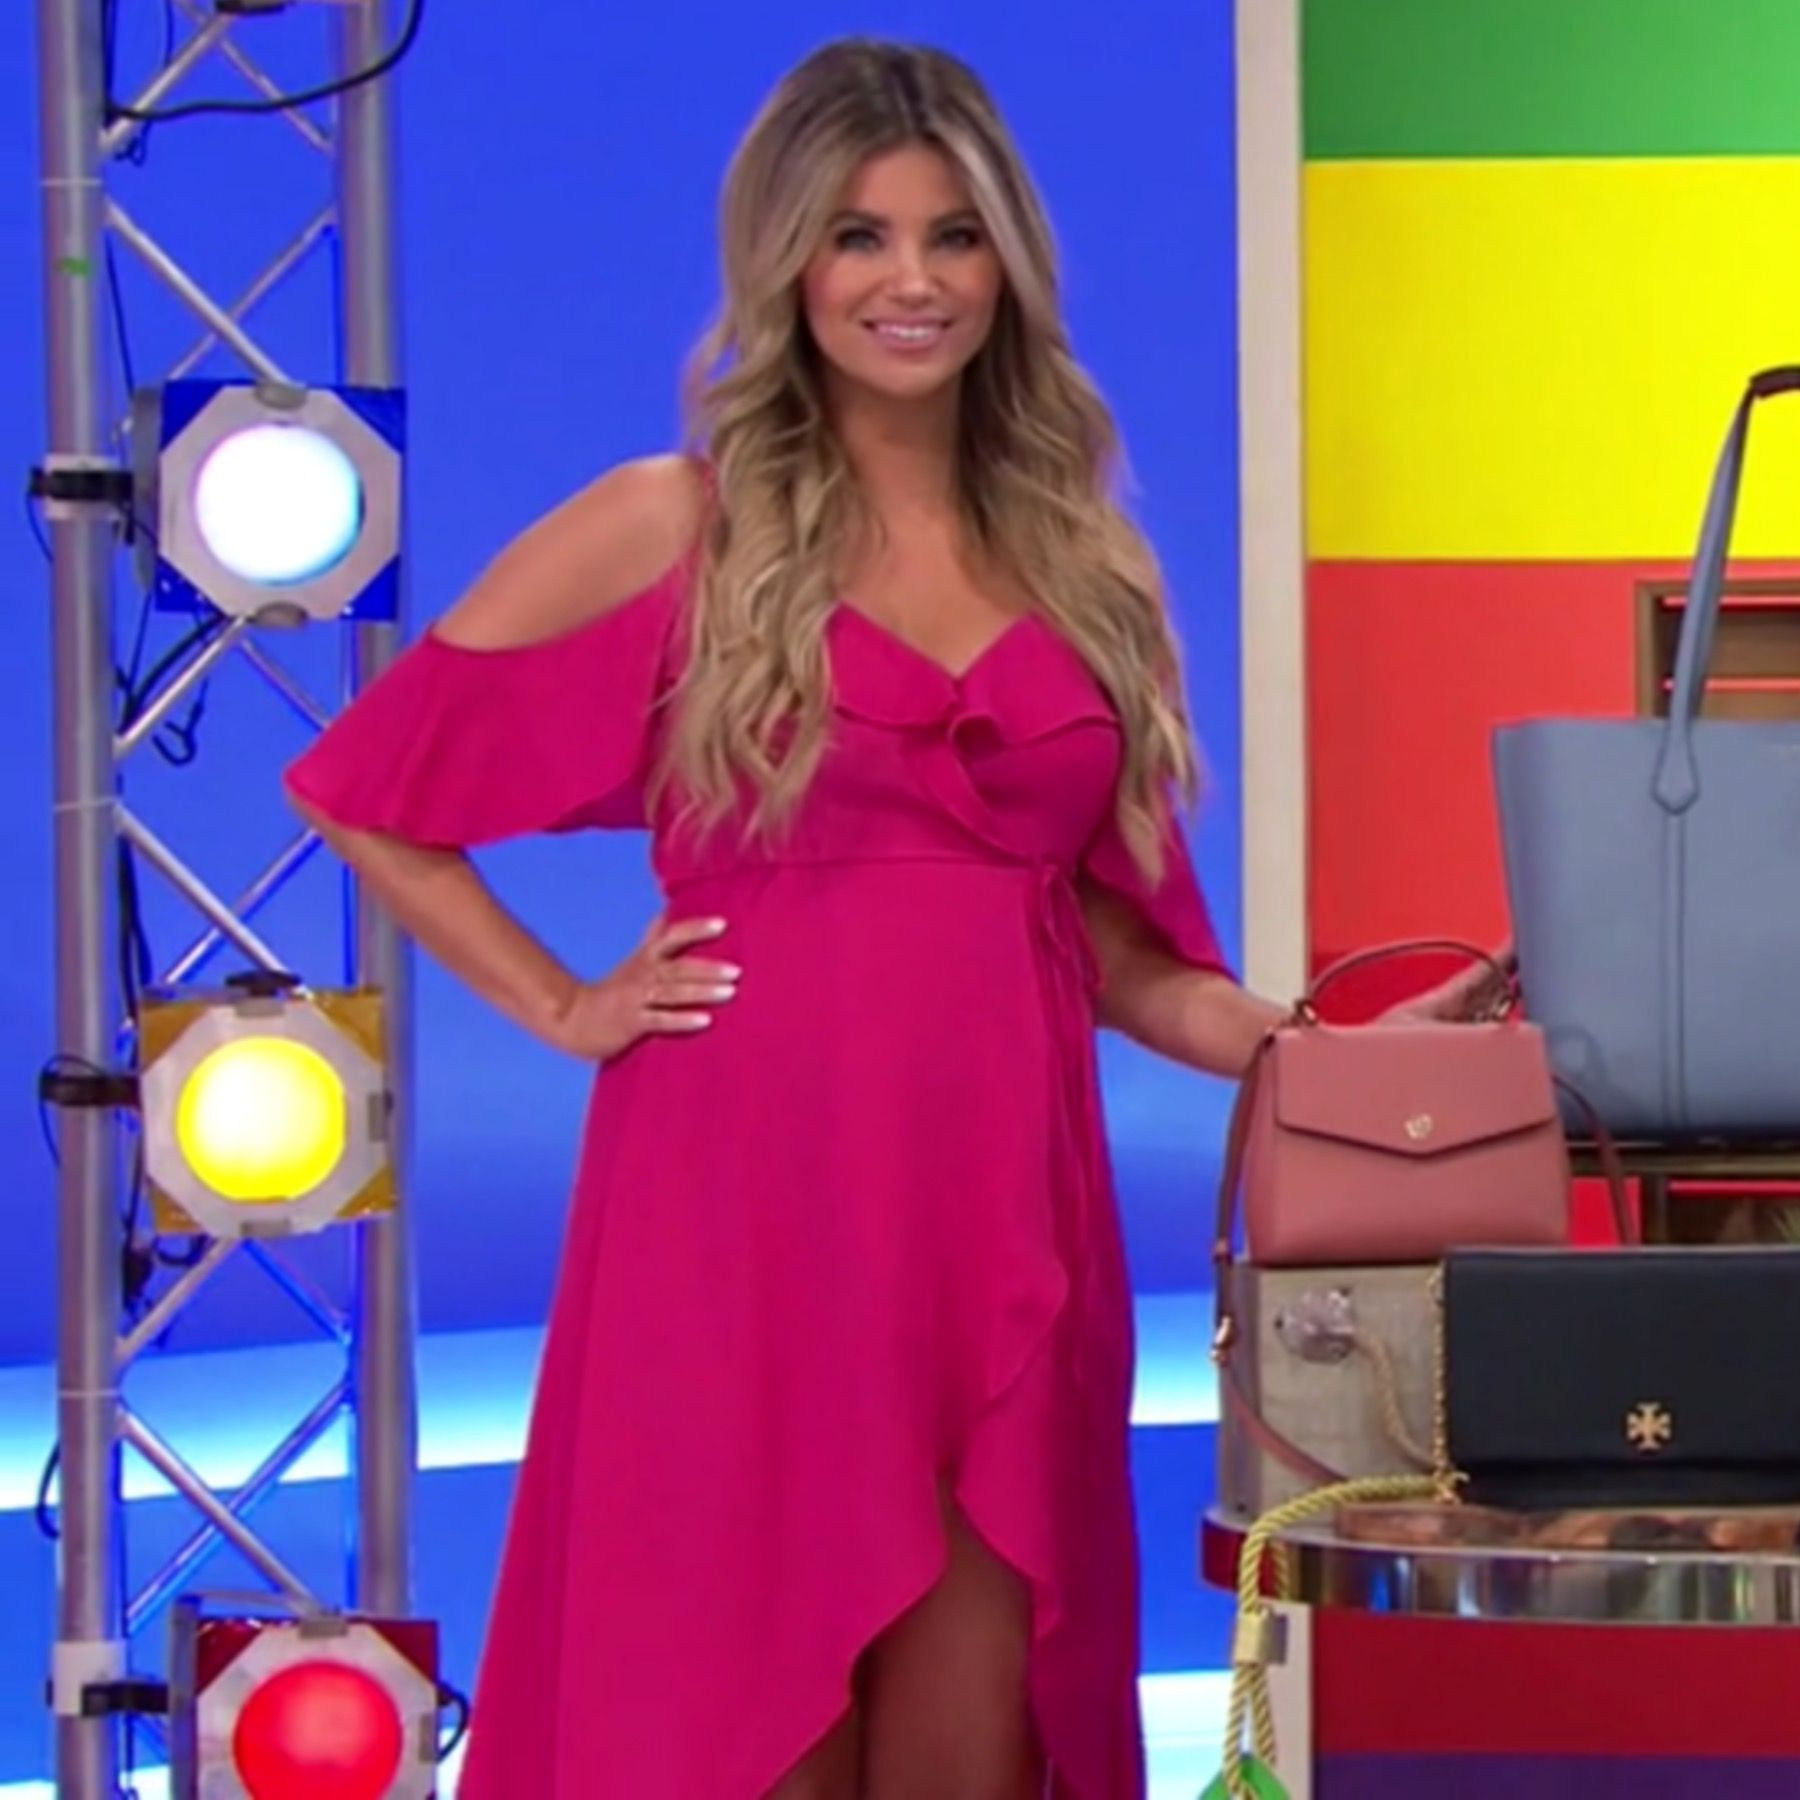 Amber Lancaster From The Price Is Right pin on amber lancaster - season 47 of the price is right